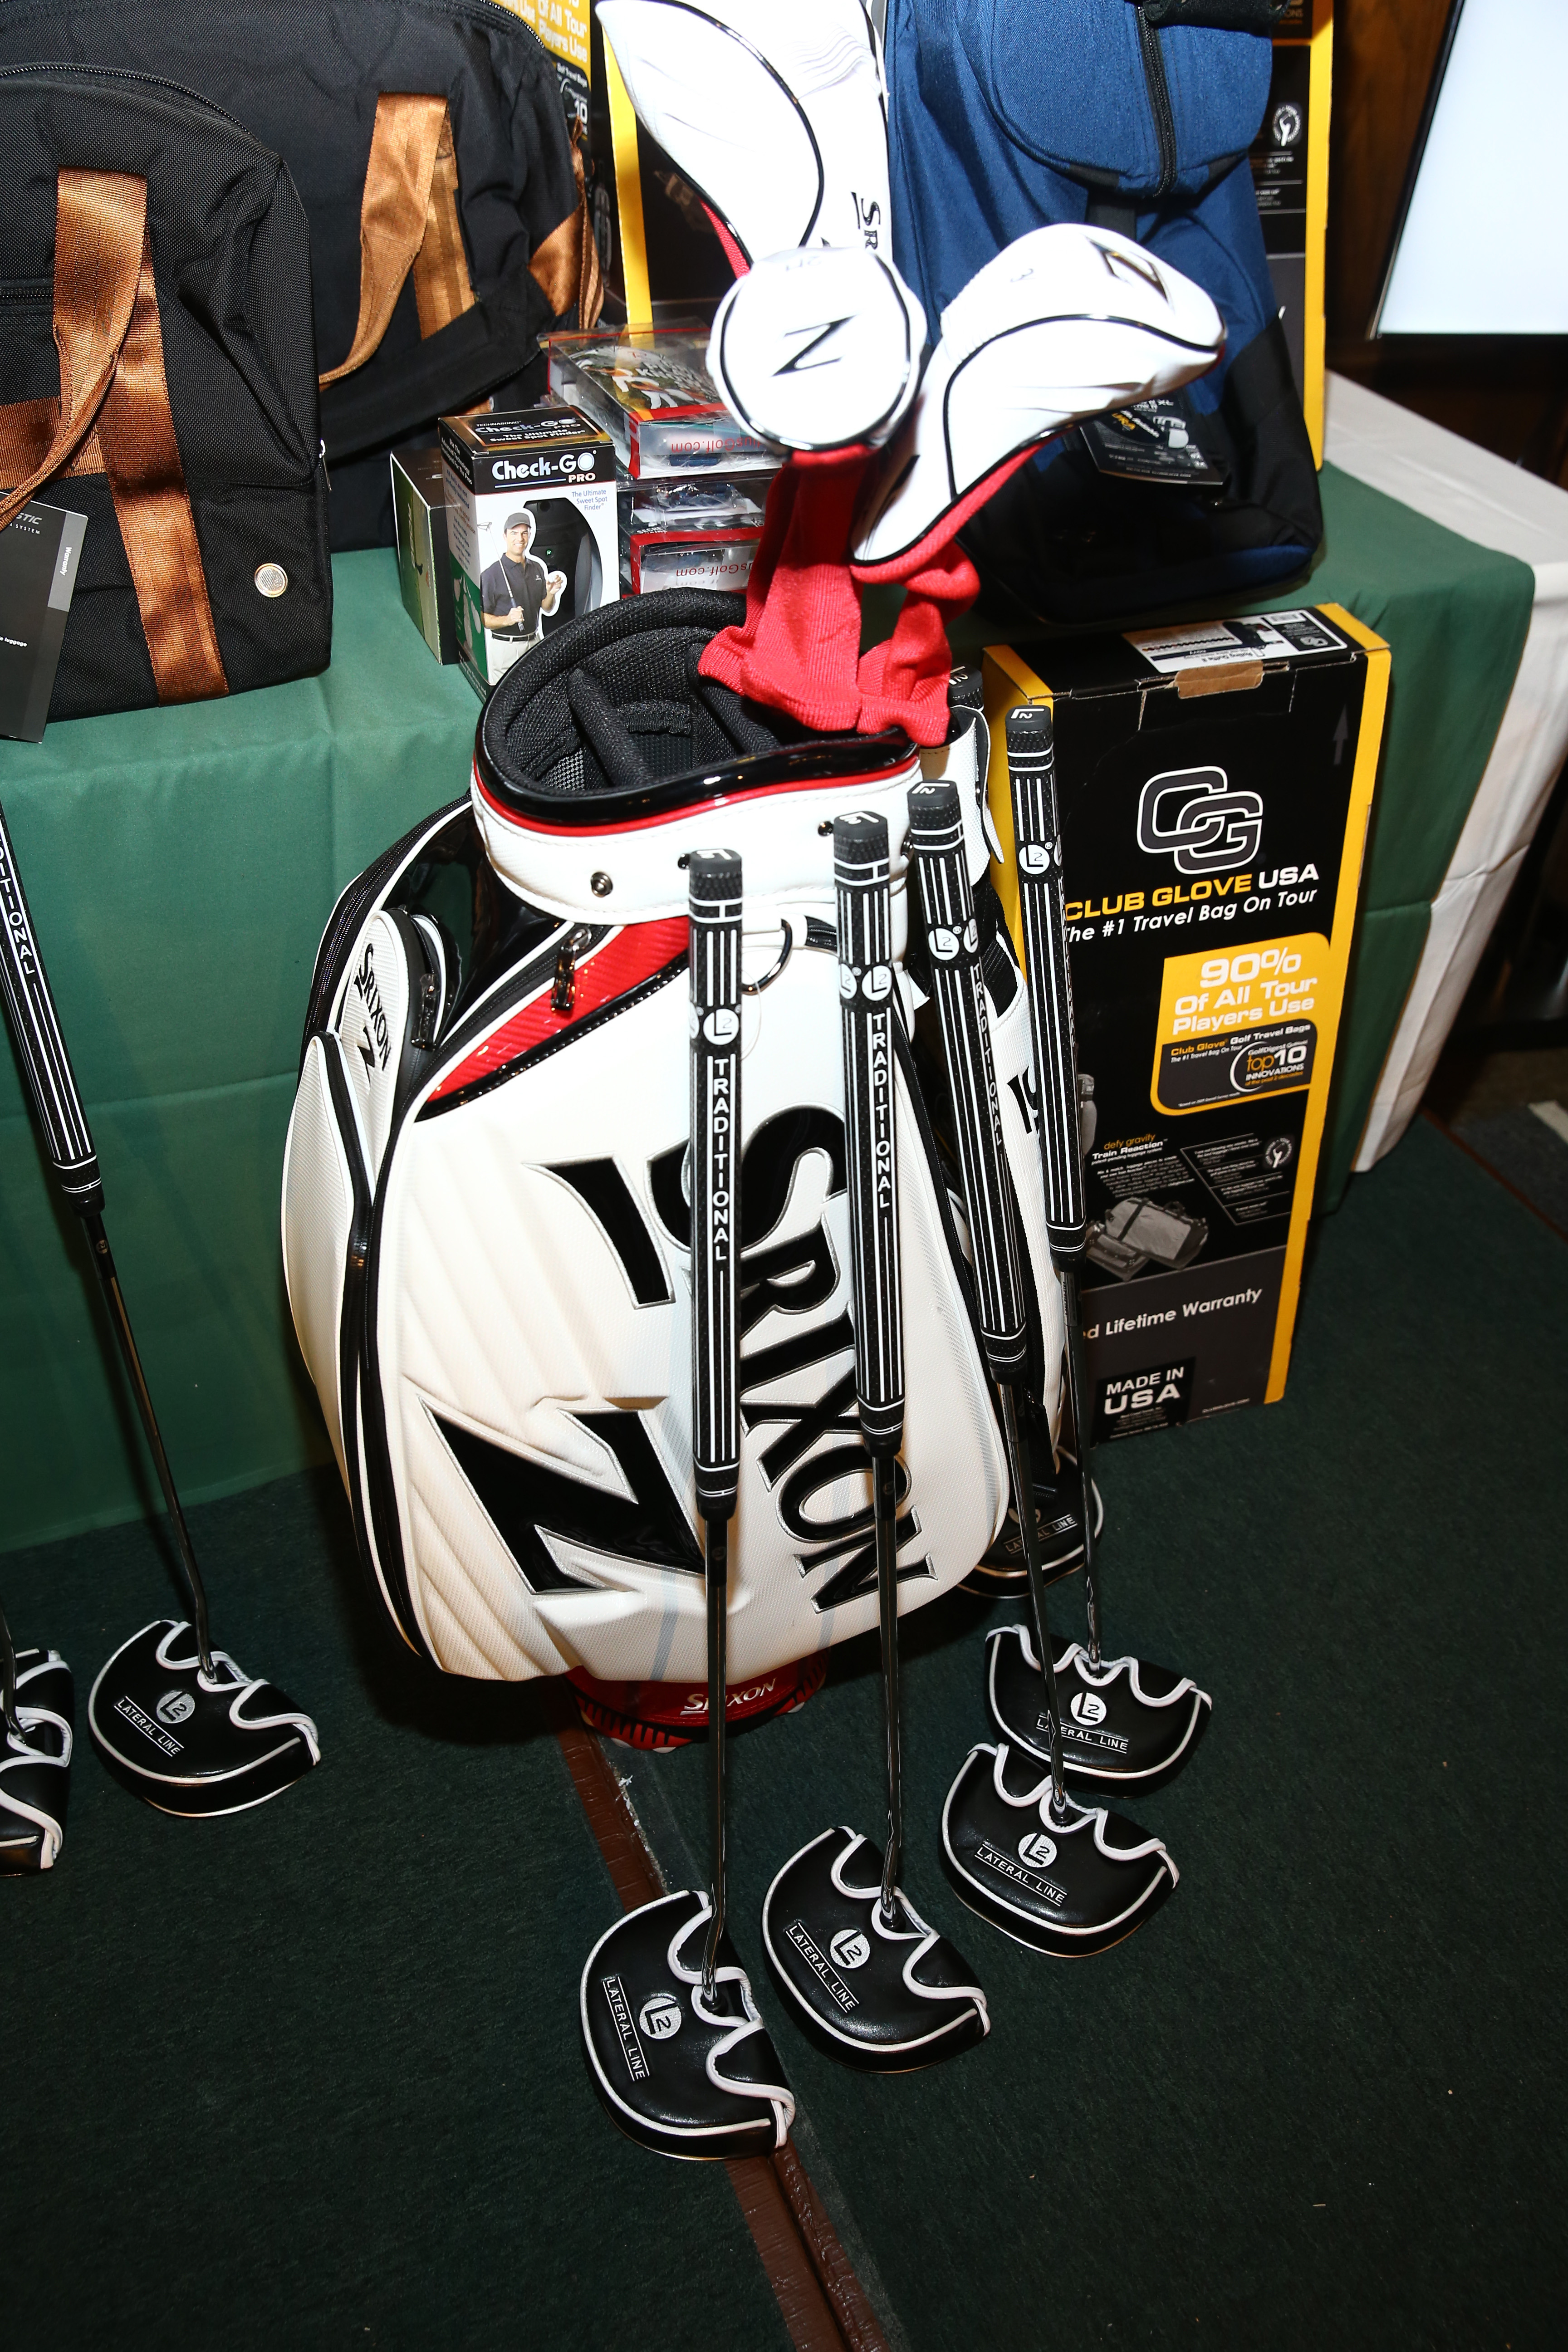 Srixon, L2 Putters, Club Glove USA and more sponsor The Screen Actors Guild Foundation's 6th Annual Los Angeles Golf Classic on June 8, 2015 in Burbank, California. (Photo by Mark Davis/Getty Images for The Screen Actors Guild Foundation)